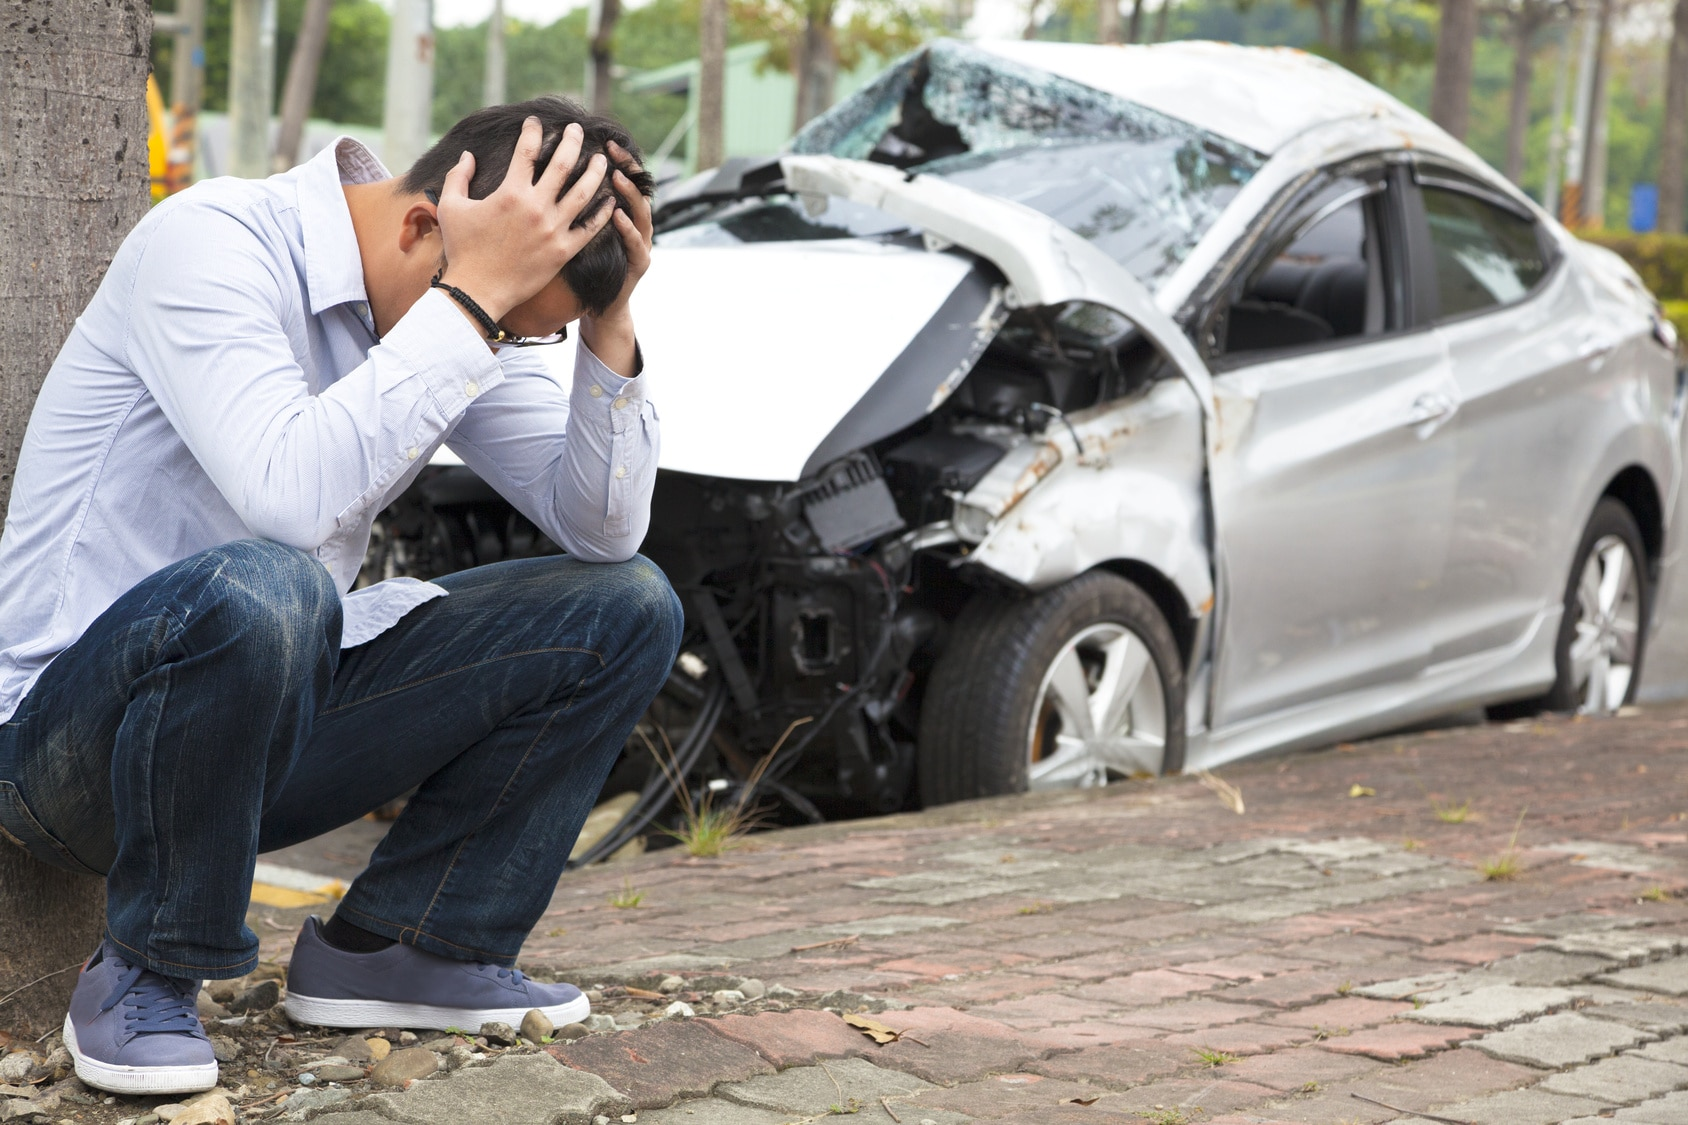 How Does The City Of Houston Handle Minor Car Accidents?